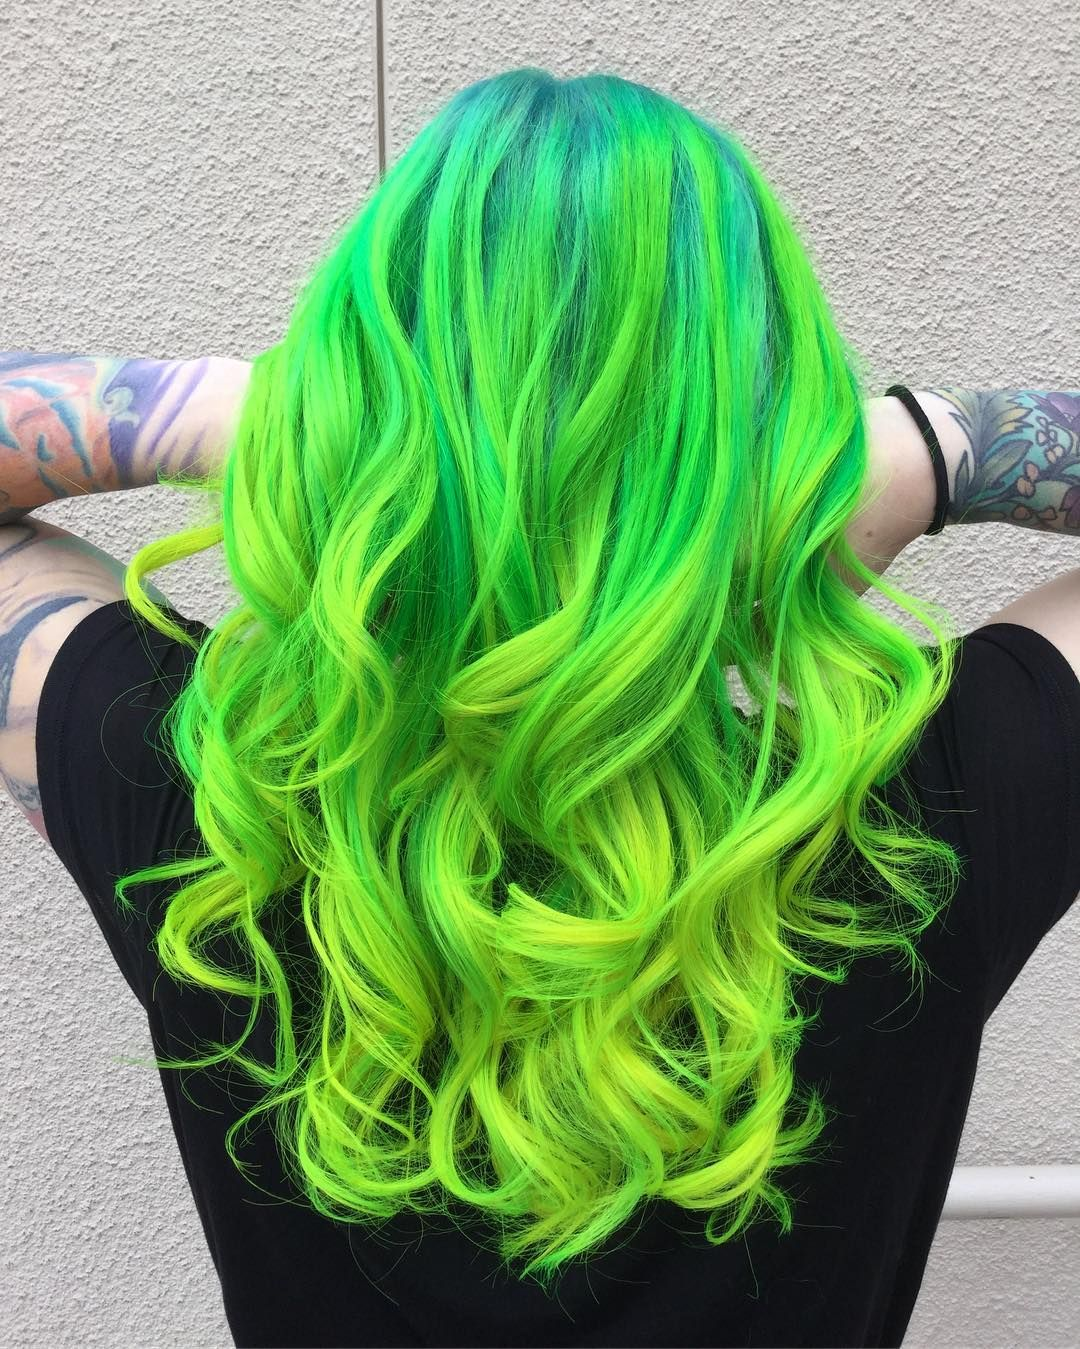 Neon Green And Turquoise Hair Color Using Pravana Neons